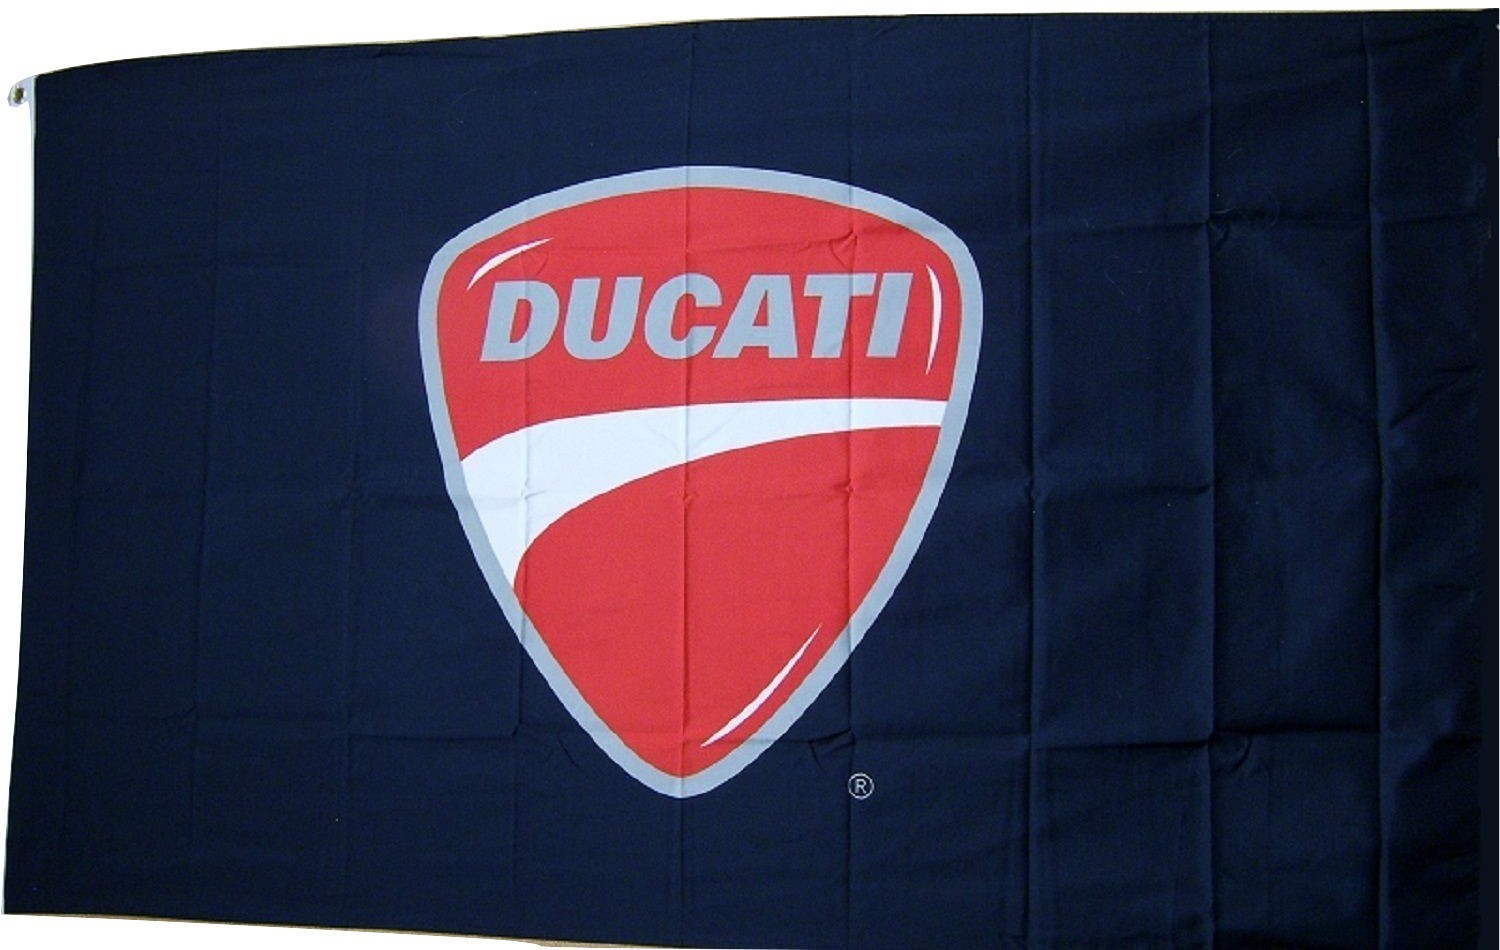 Ducati Motorcycle And Fear This (2) Flag Combo 3'x5' Indoor Outdoor Banners